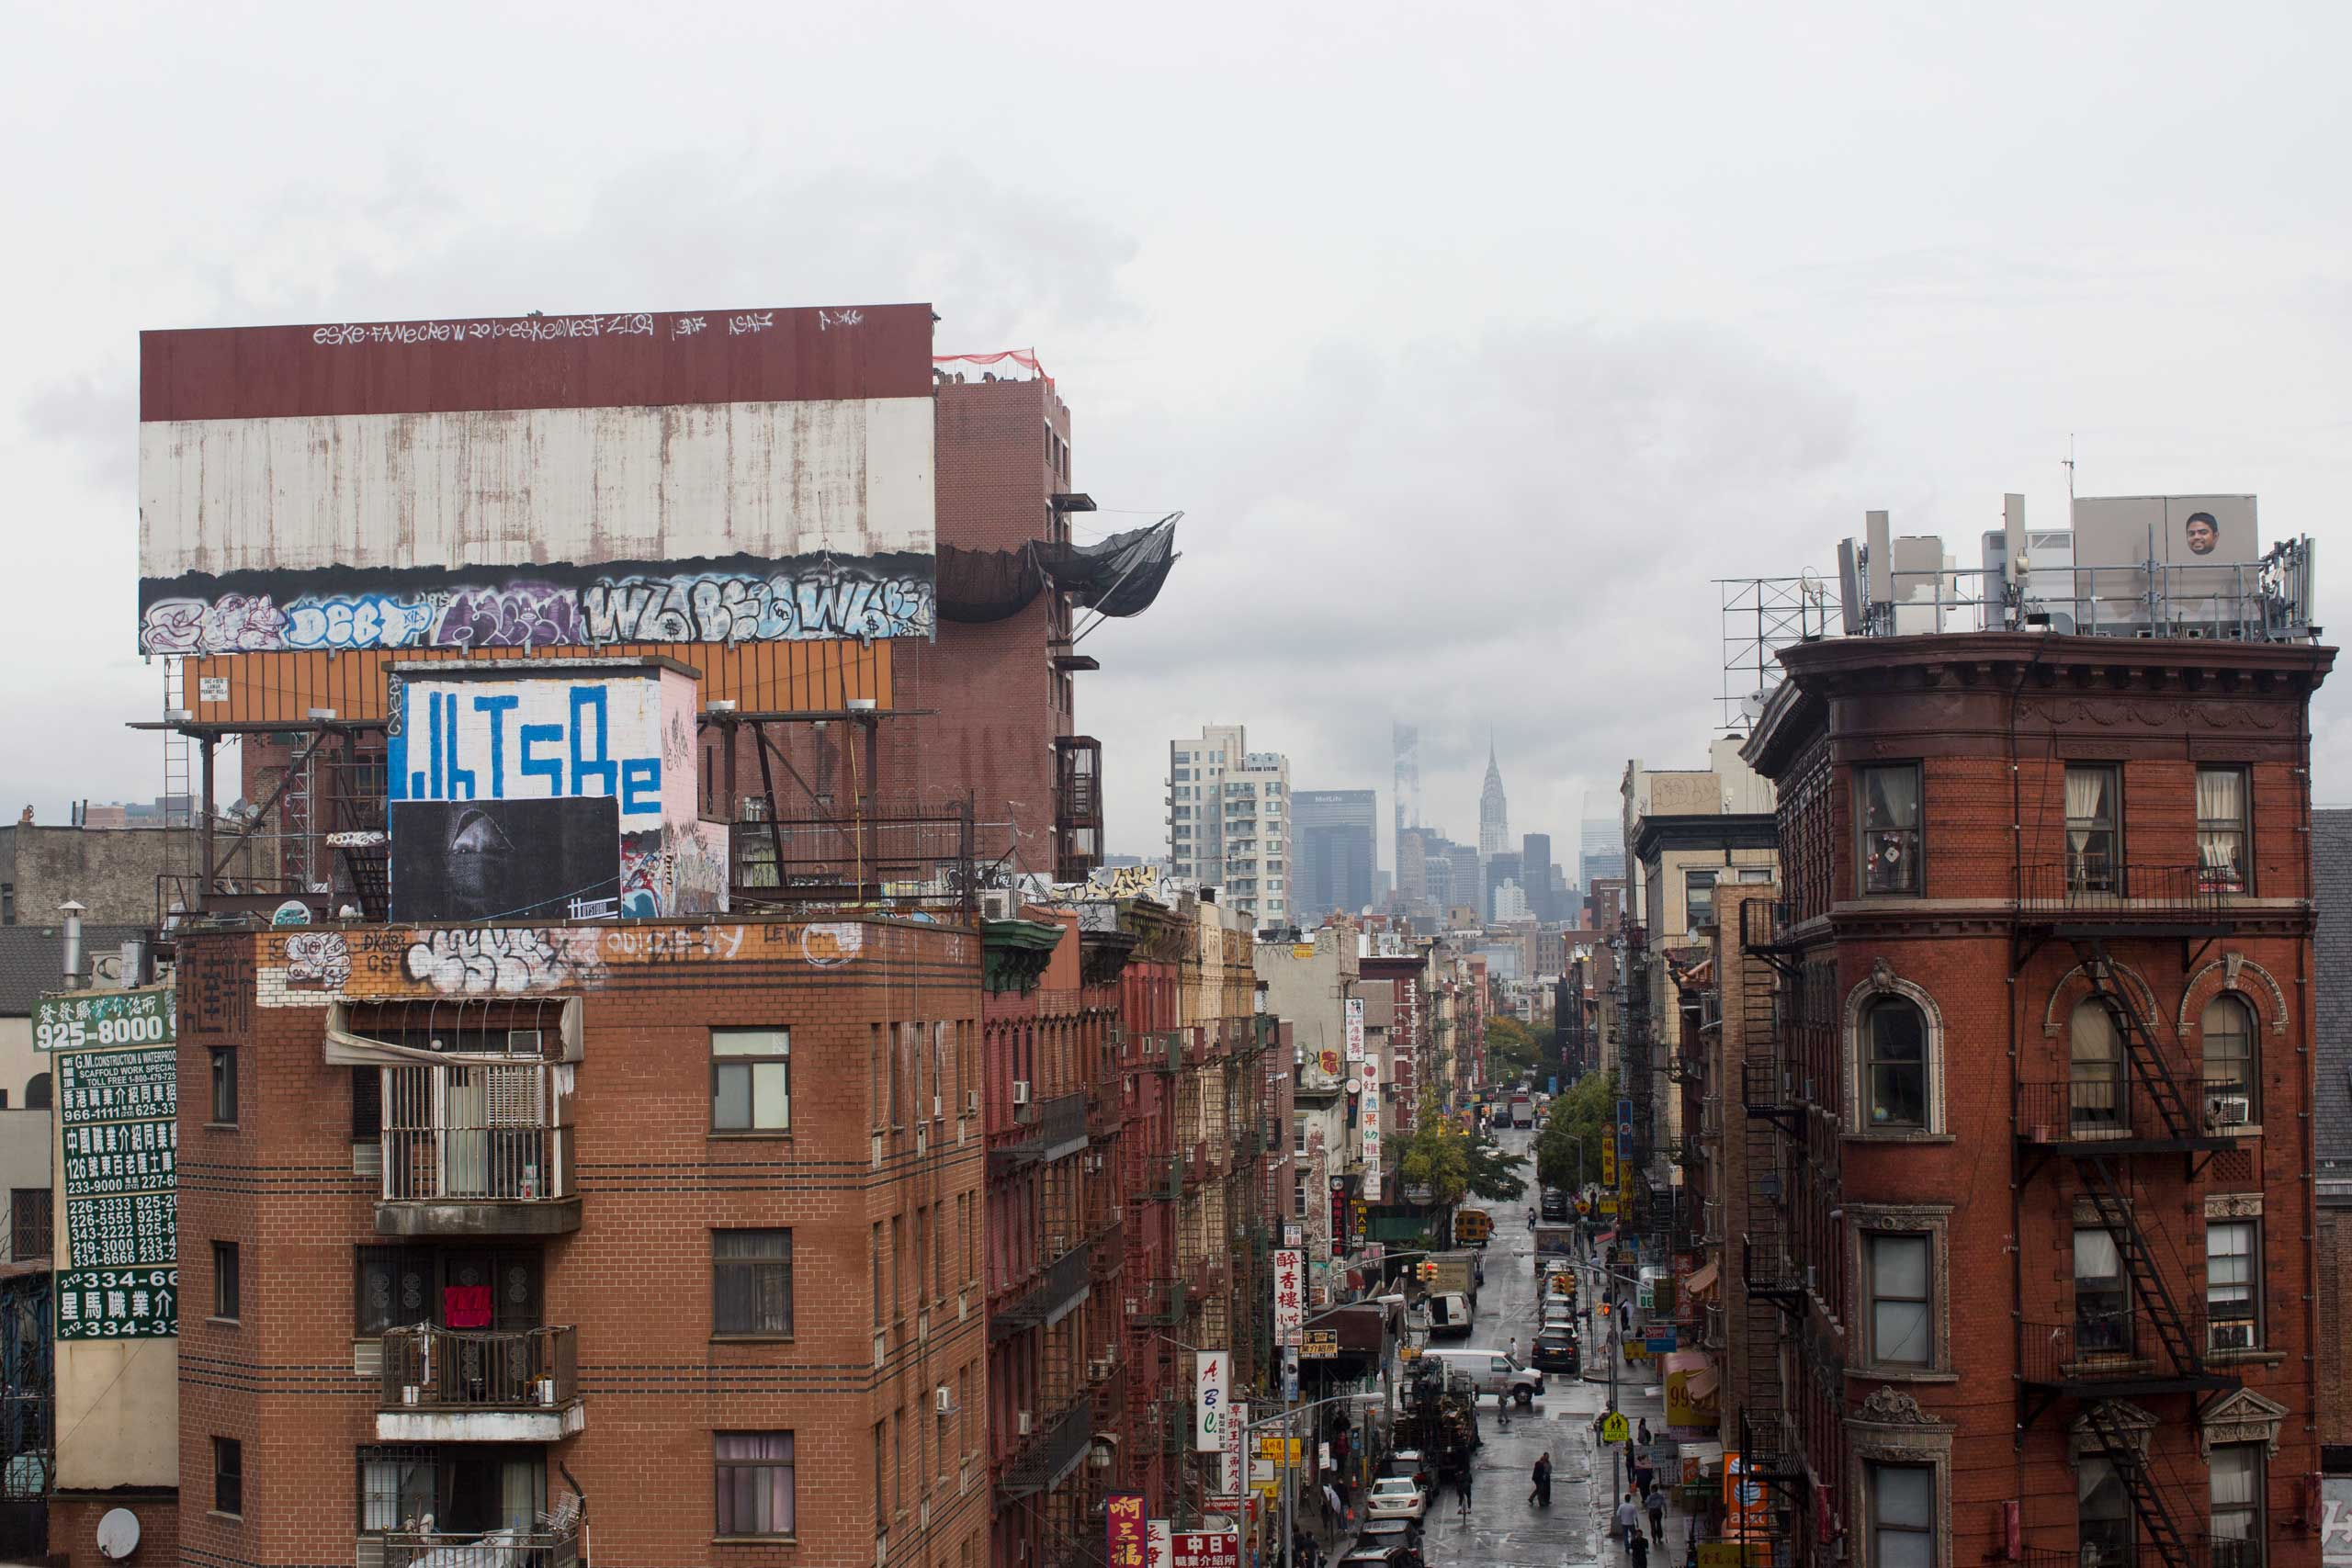 One of Dysturb's photograph on a rooftop in New York (on Division Street in Chinatown). October 16th 2014.